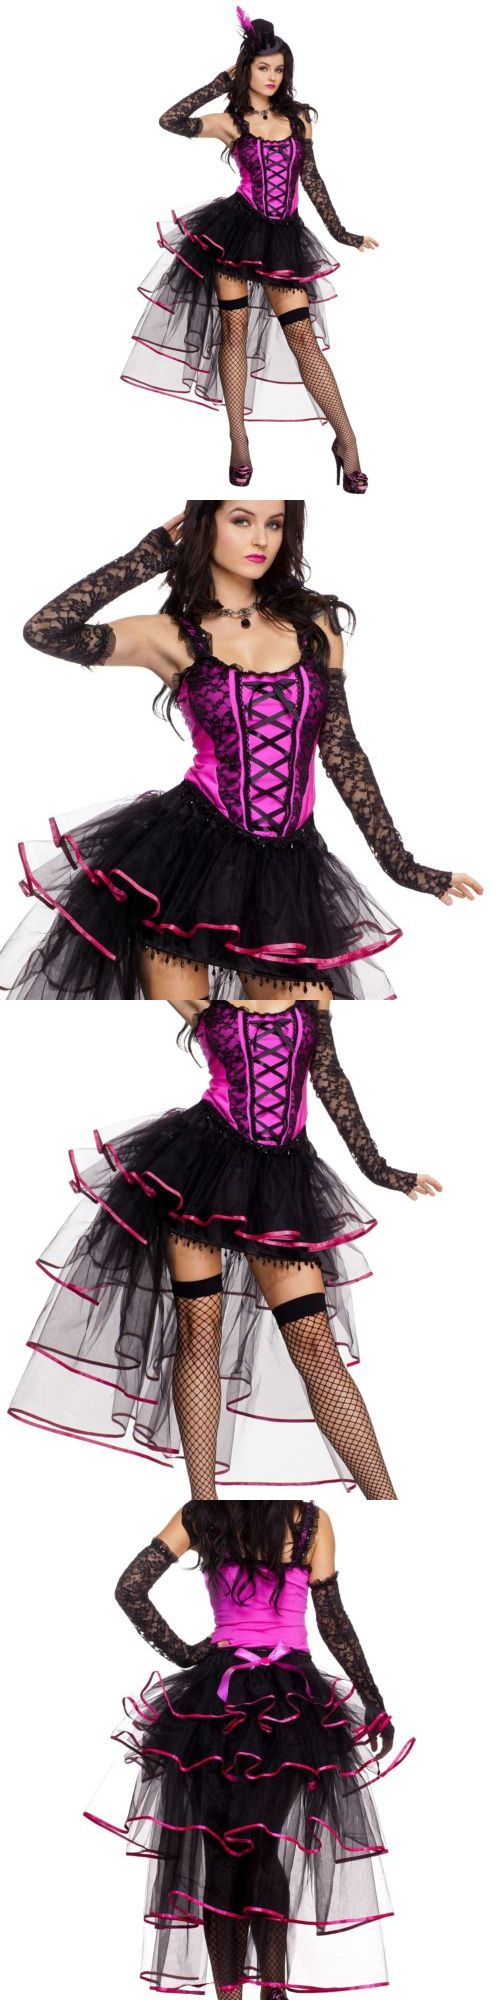 halloween costumes women can can costume adult burlesque dancer saloon girl halloween fancy dress buy - Can Can Dancer Halloween Costume